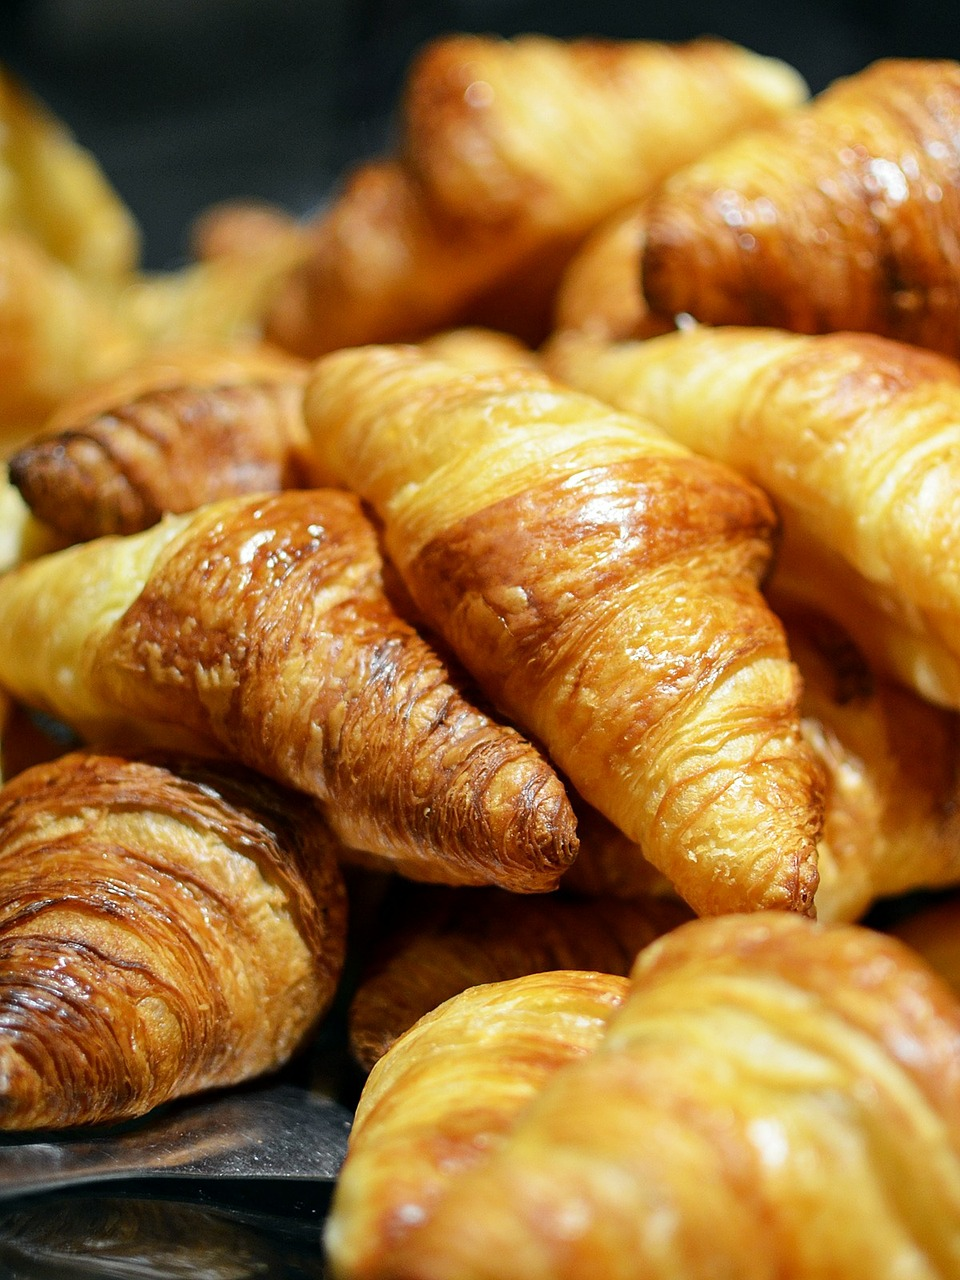 close-up of delicious looking croissants